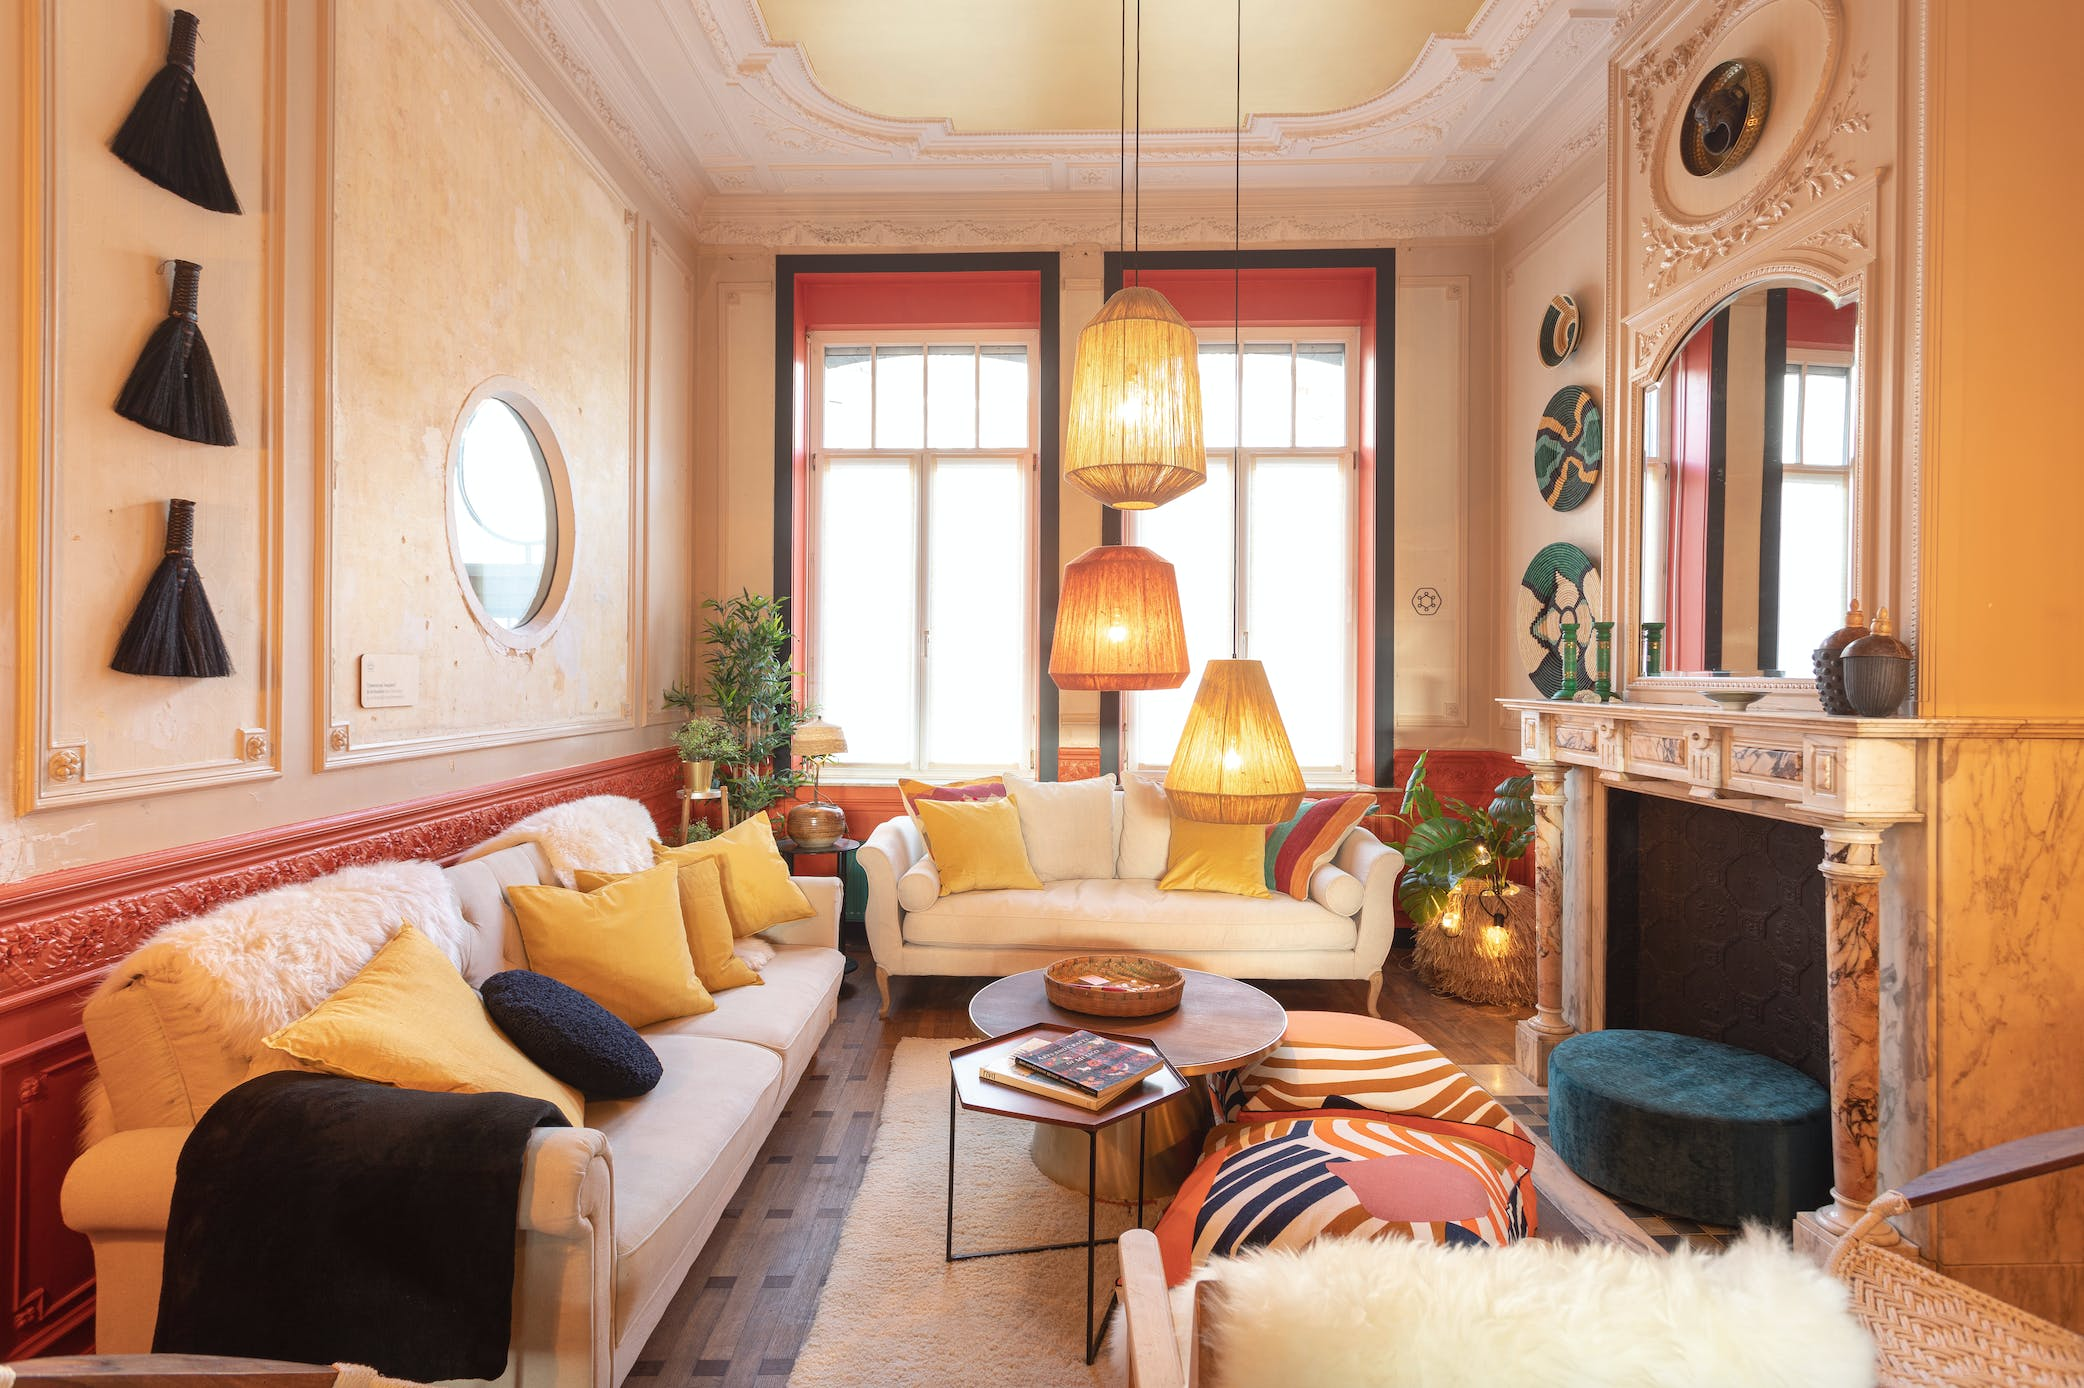 15 Residents | Ixelles | High-Ceilinged Mansion - Incl. Coworking + Gym + Movie Room